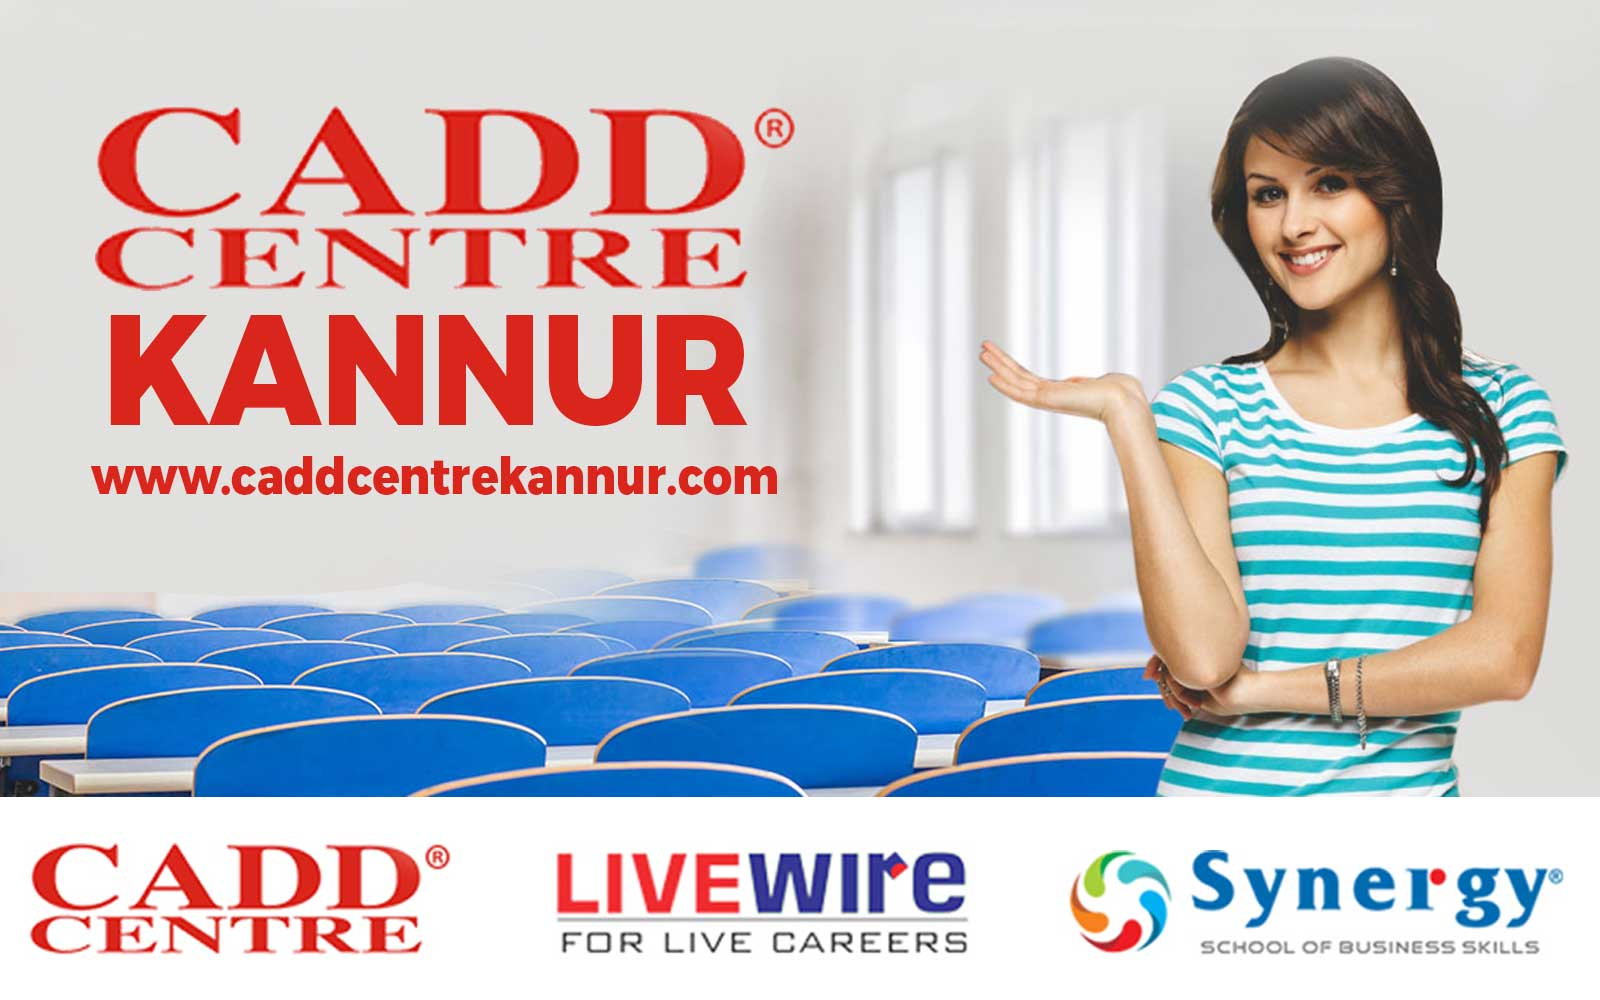 CADD Center Electronic